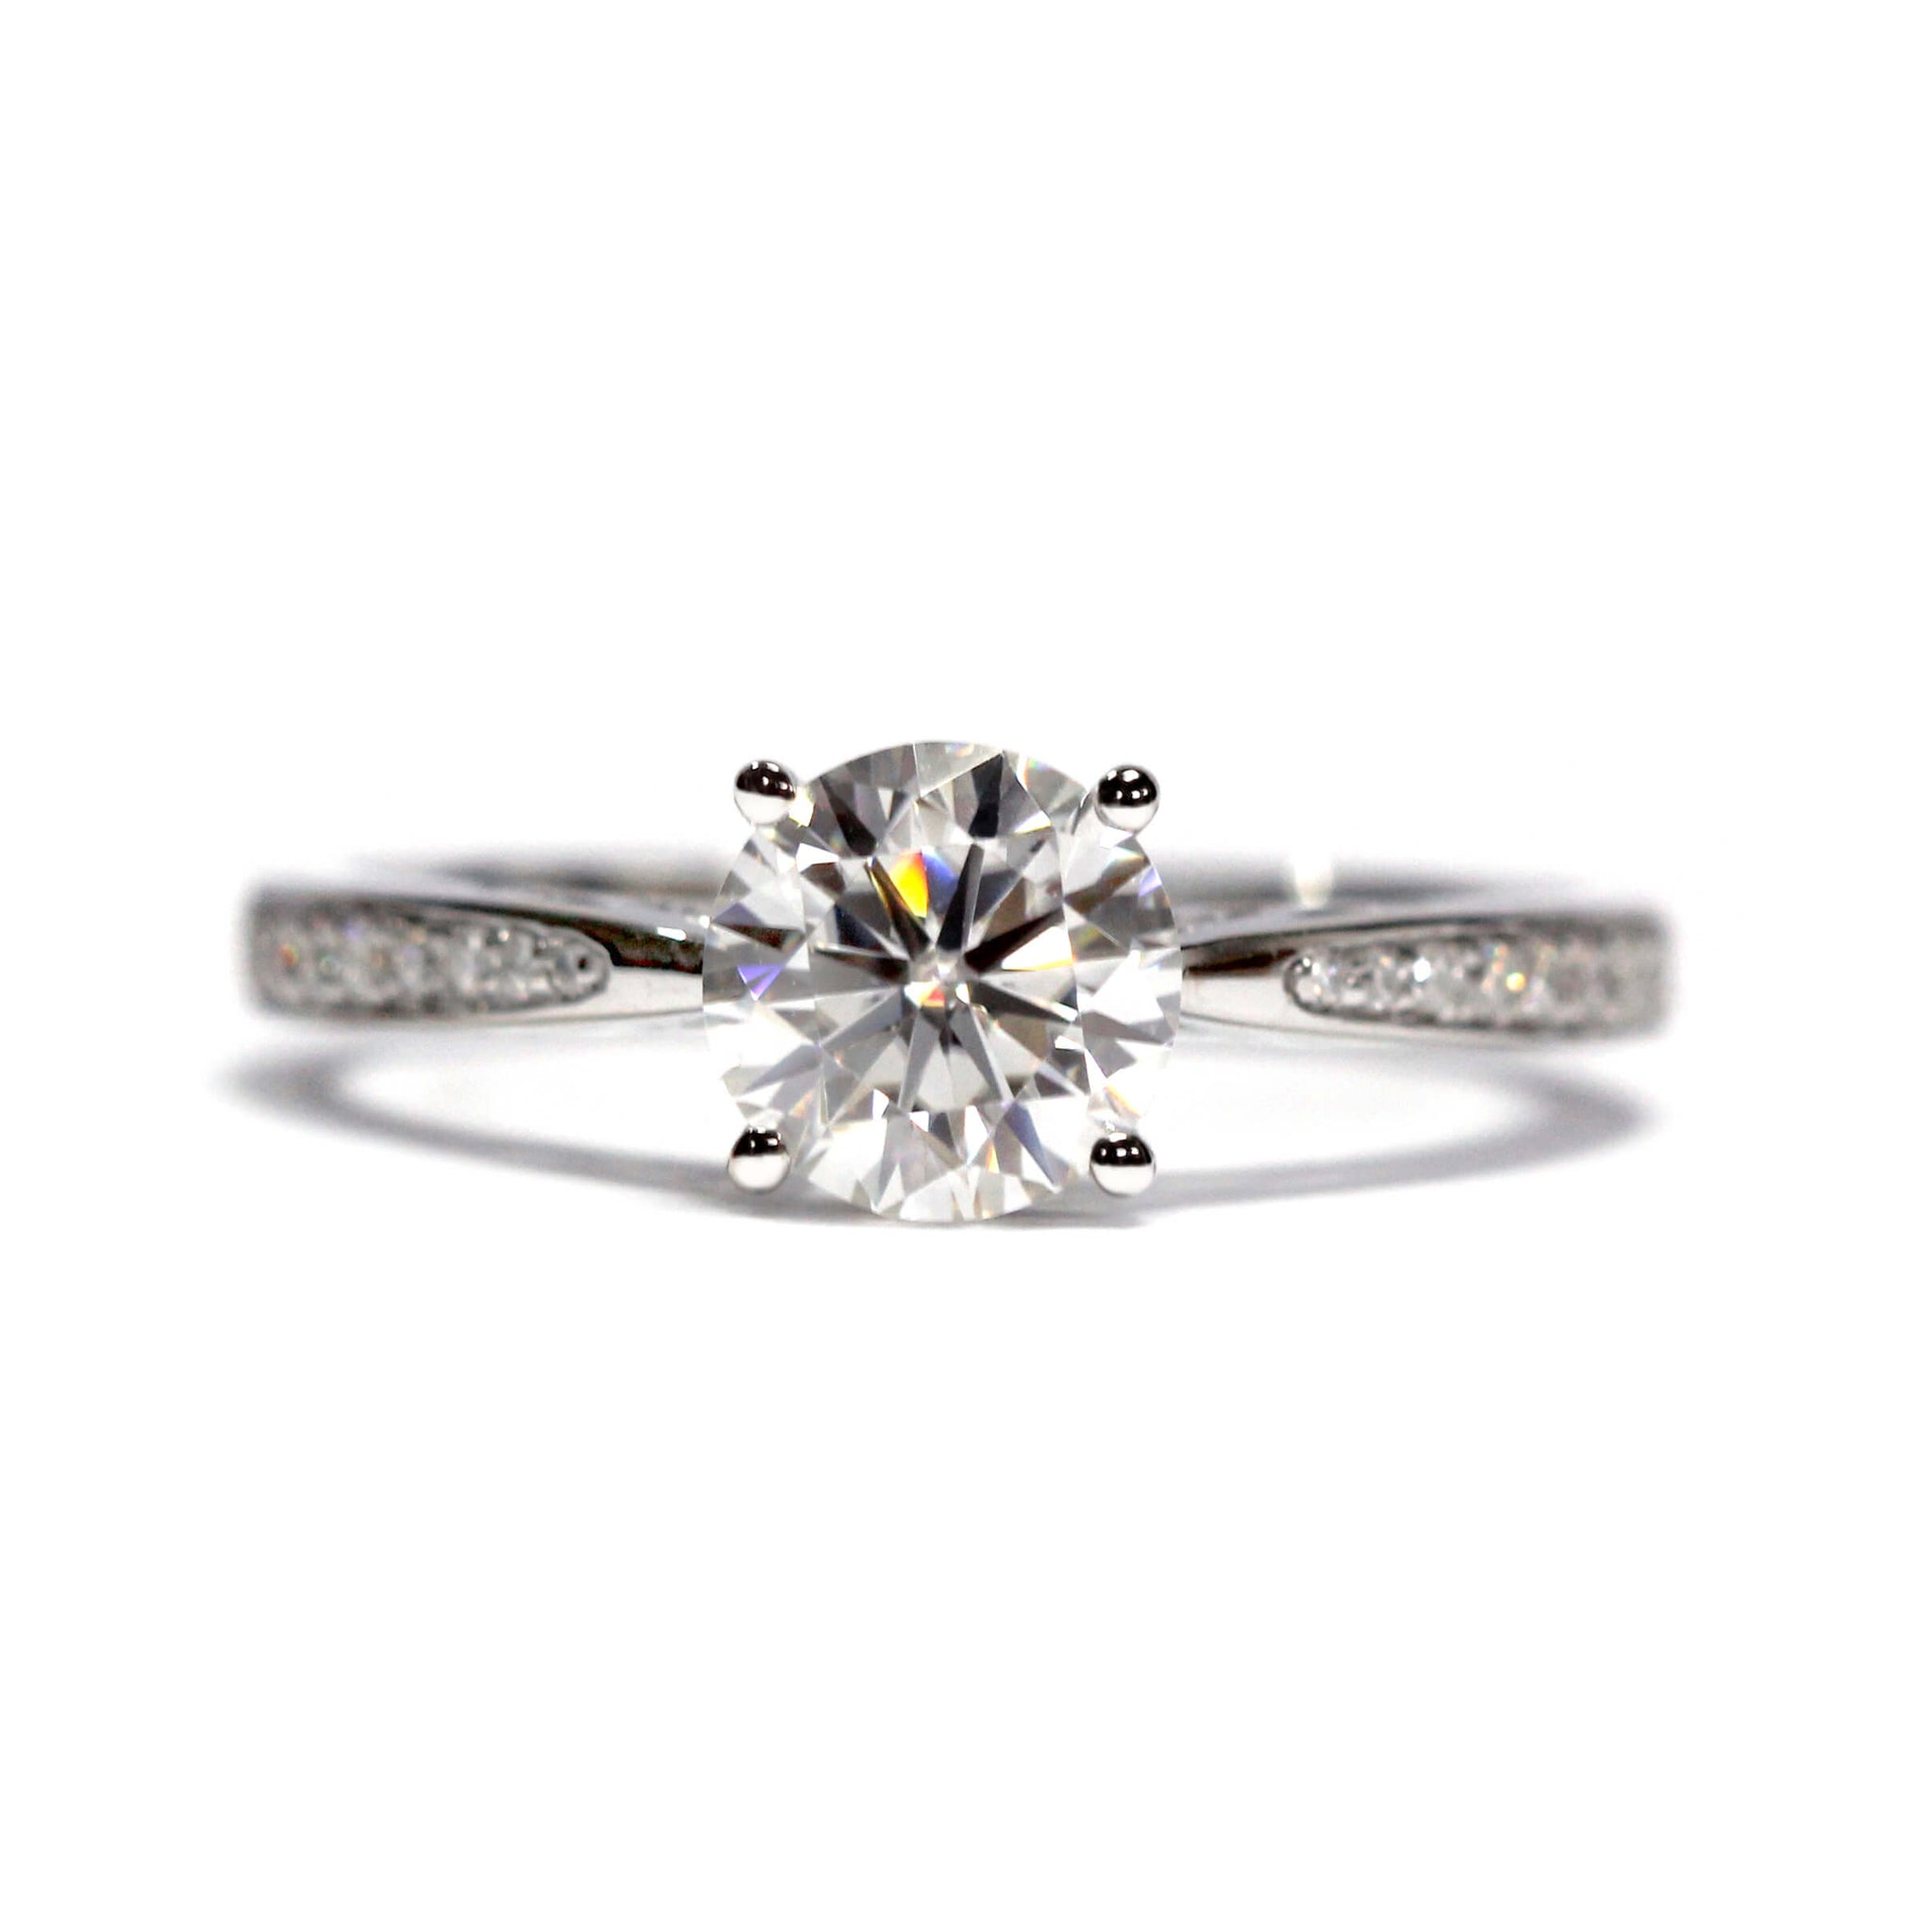 1 Carat Moissanite ArtCarved Engagement Ring with Accents